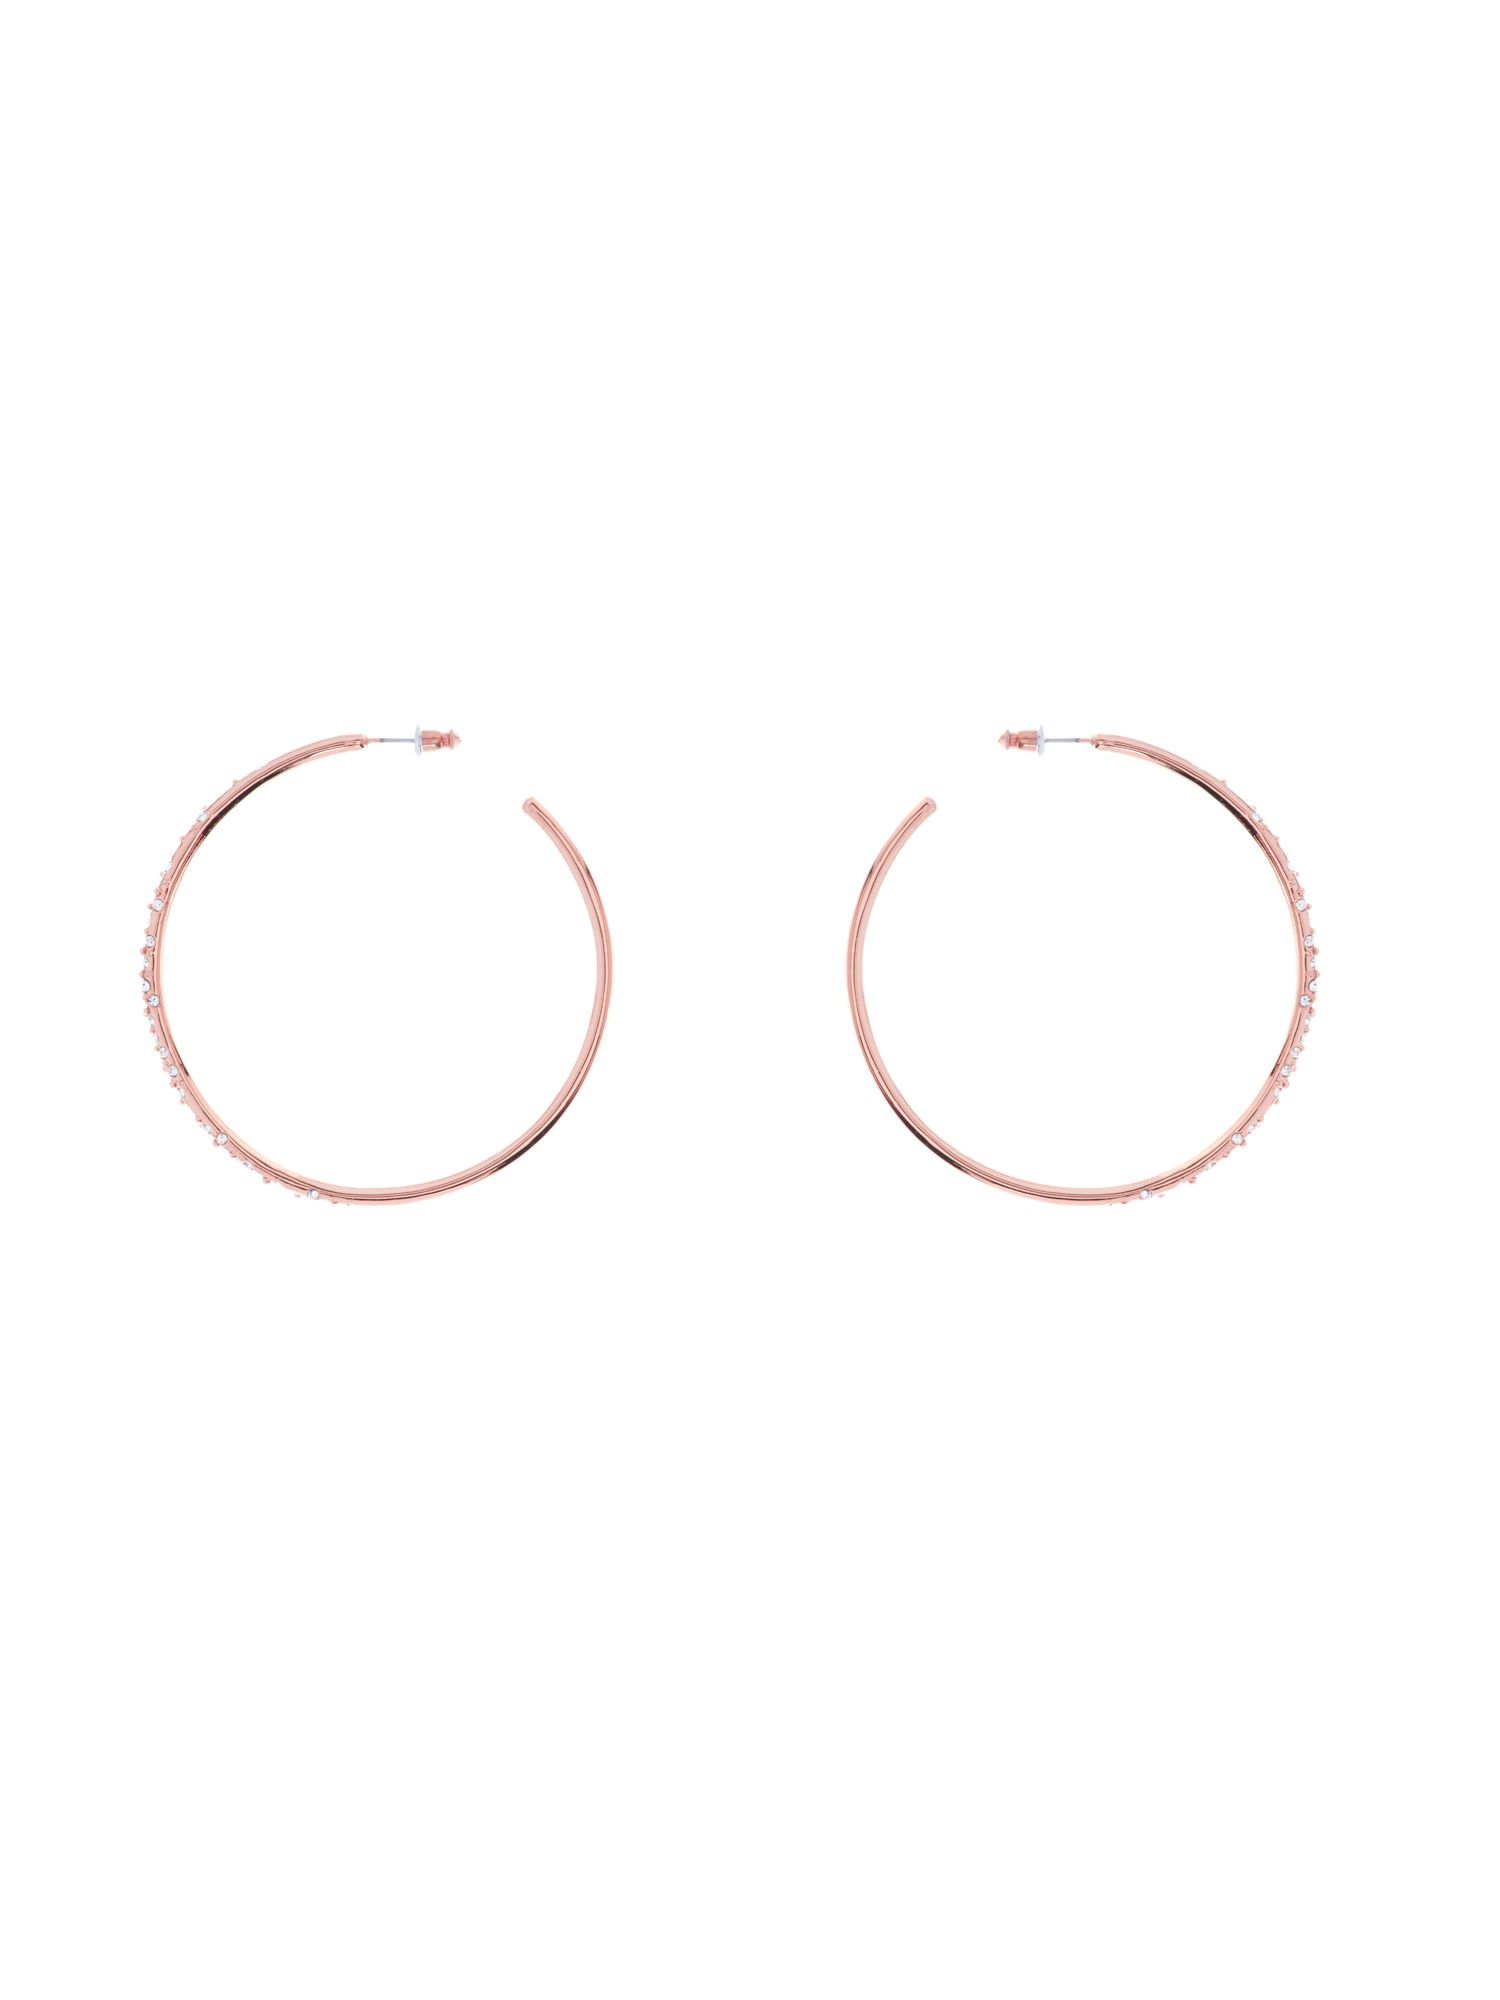 Sprinkle hoop earrings